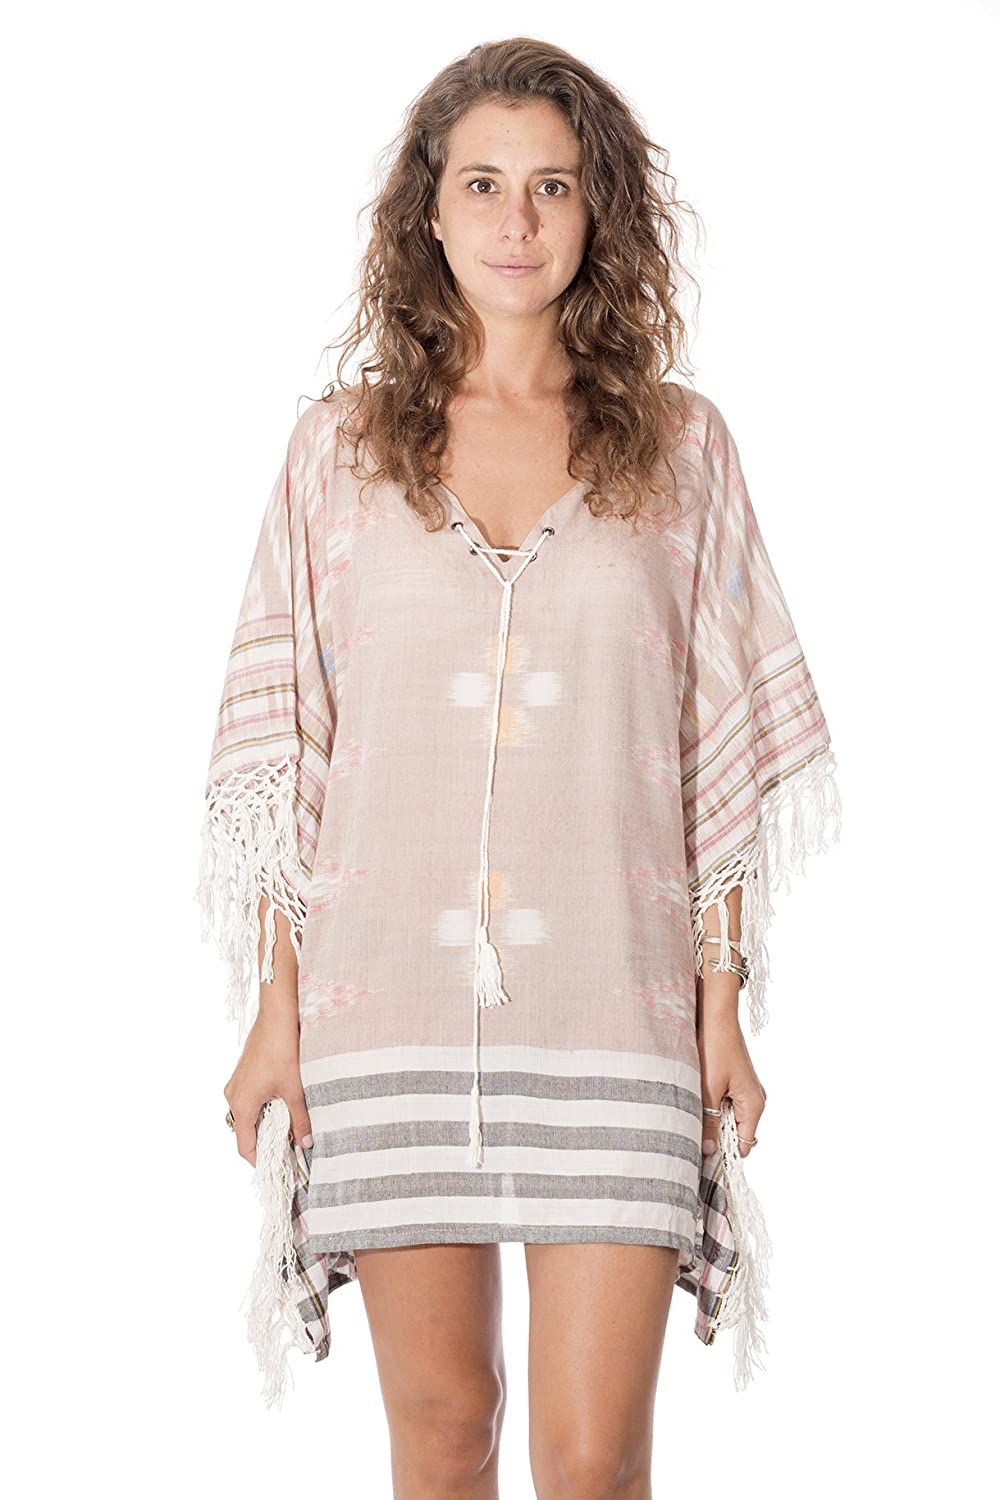 1f136229e1 Hand made, top quality women\'s fashion caftan. The ikat fabric makes it a  very versatile, bohemian inspired caftan / cover up